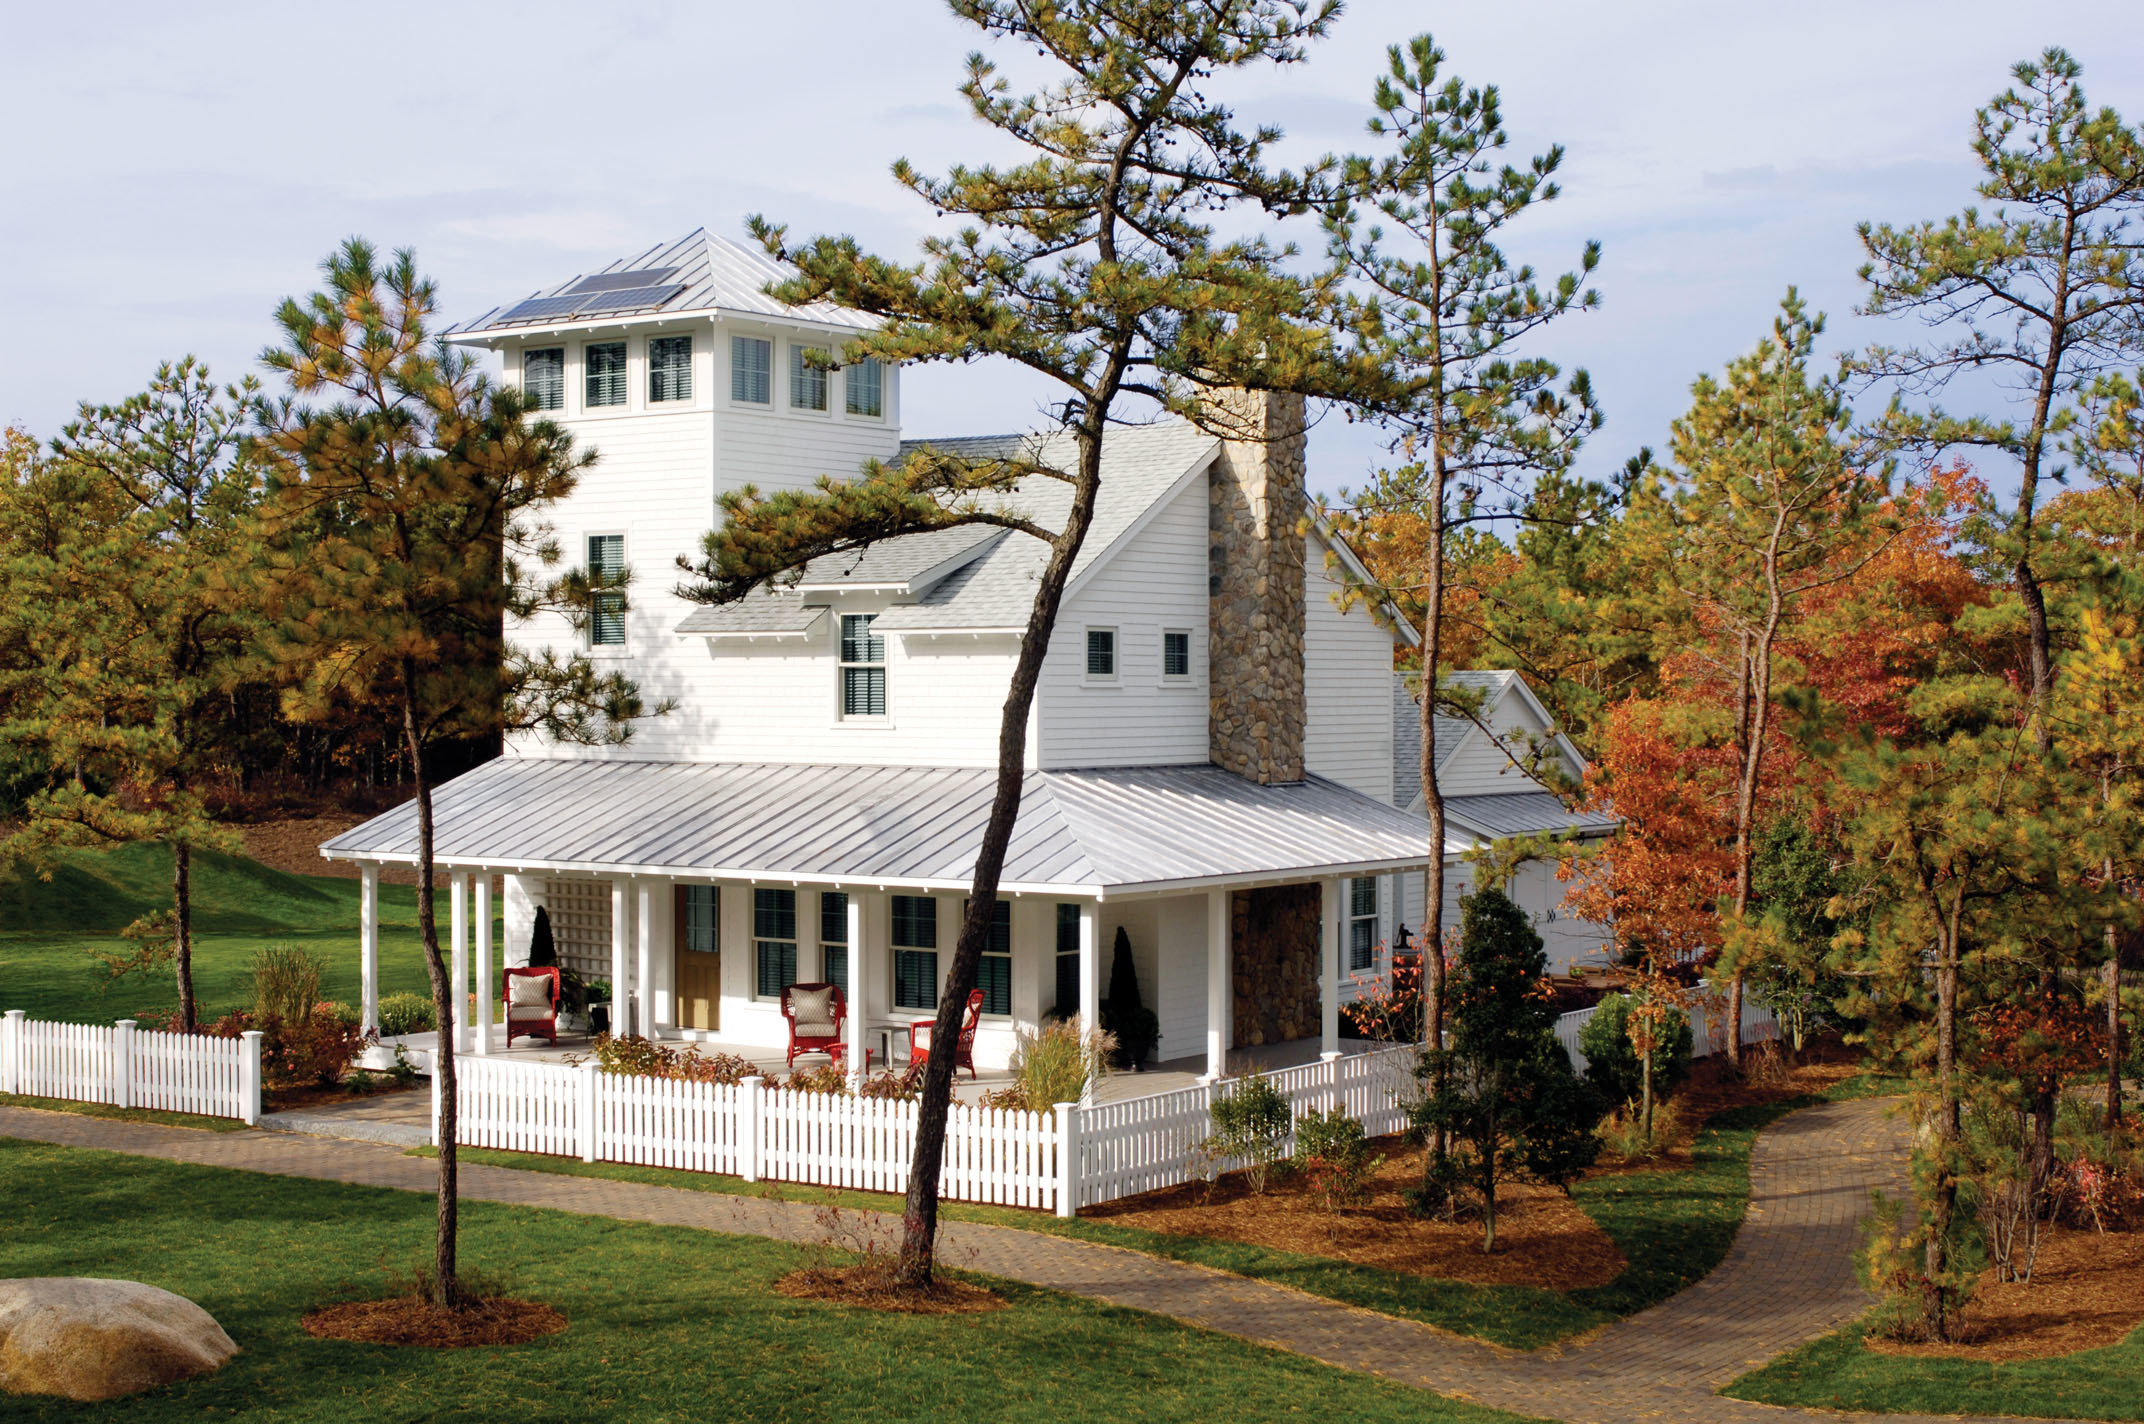 MacKenzie Brothers HGTV Green Home Cottage